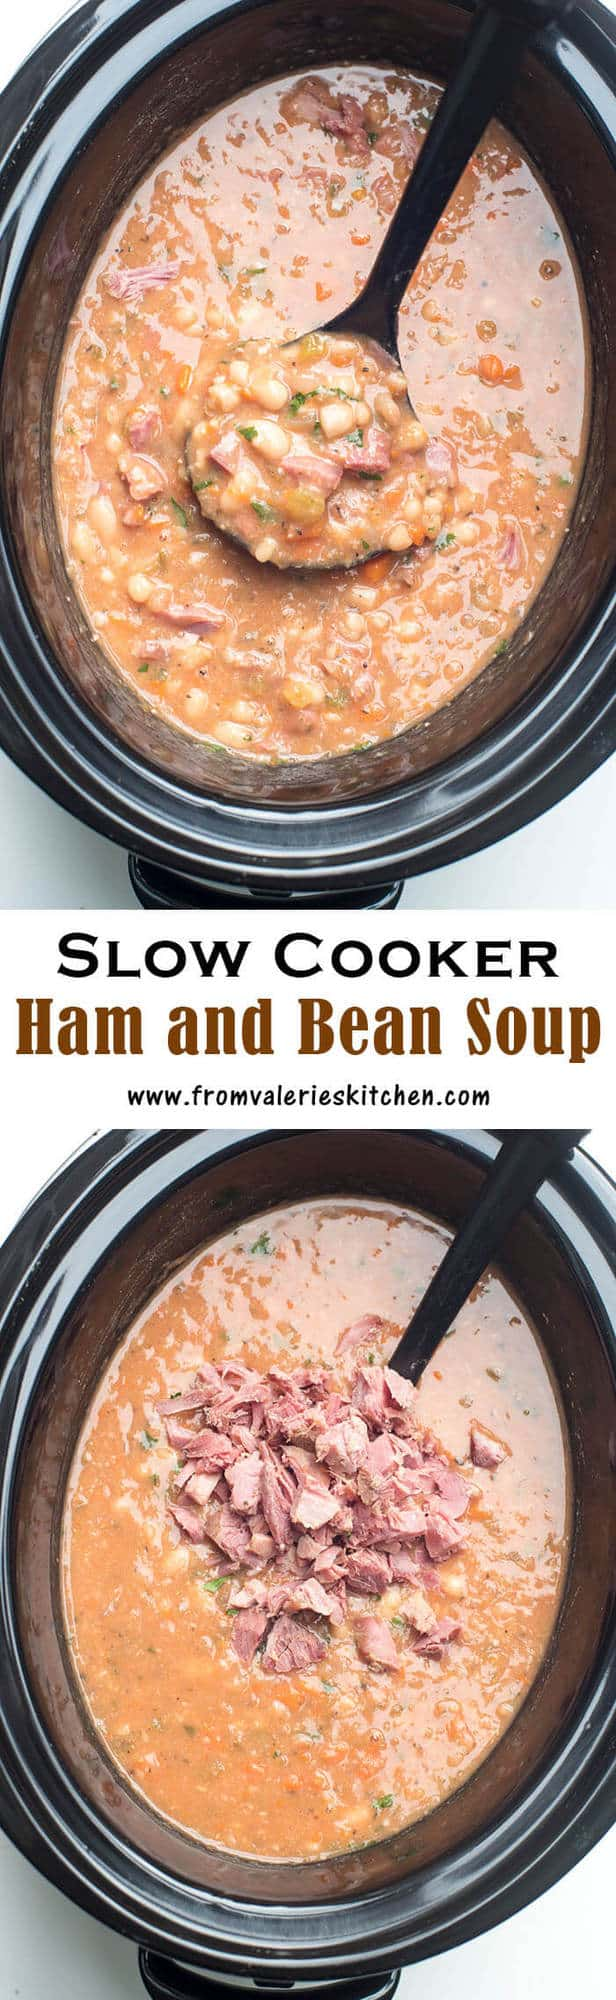 A great way to make use of the ham bone from your holiday ham. This Slow Cooker Ham and Bean Soup is the perfect post-holiday comfort food!